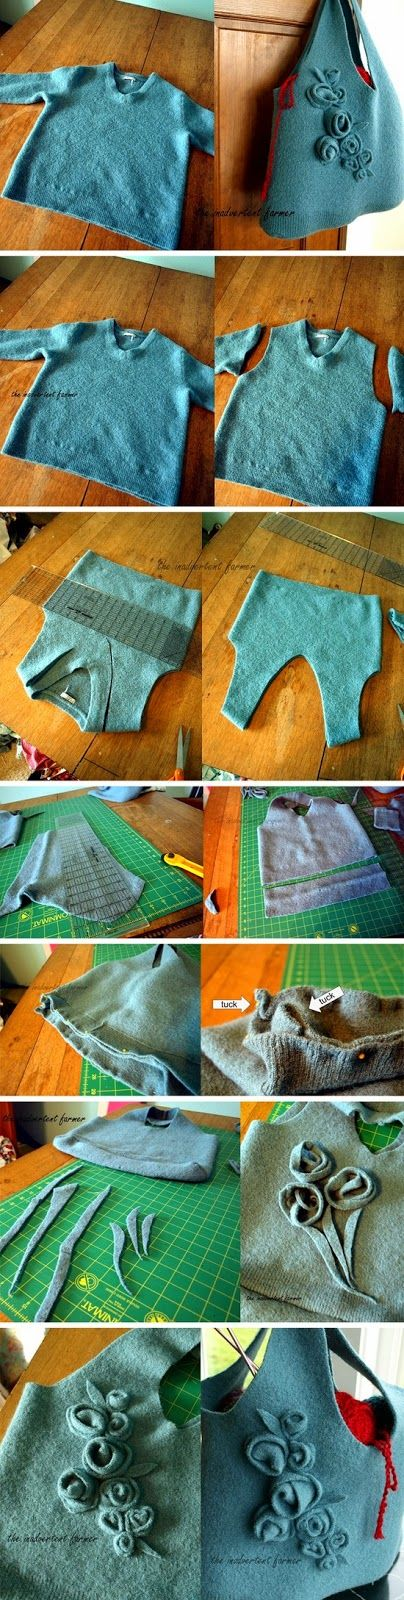 DIY Felted Wool Sweater into a Purse